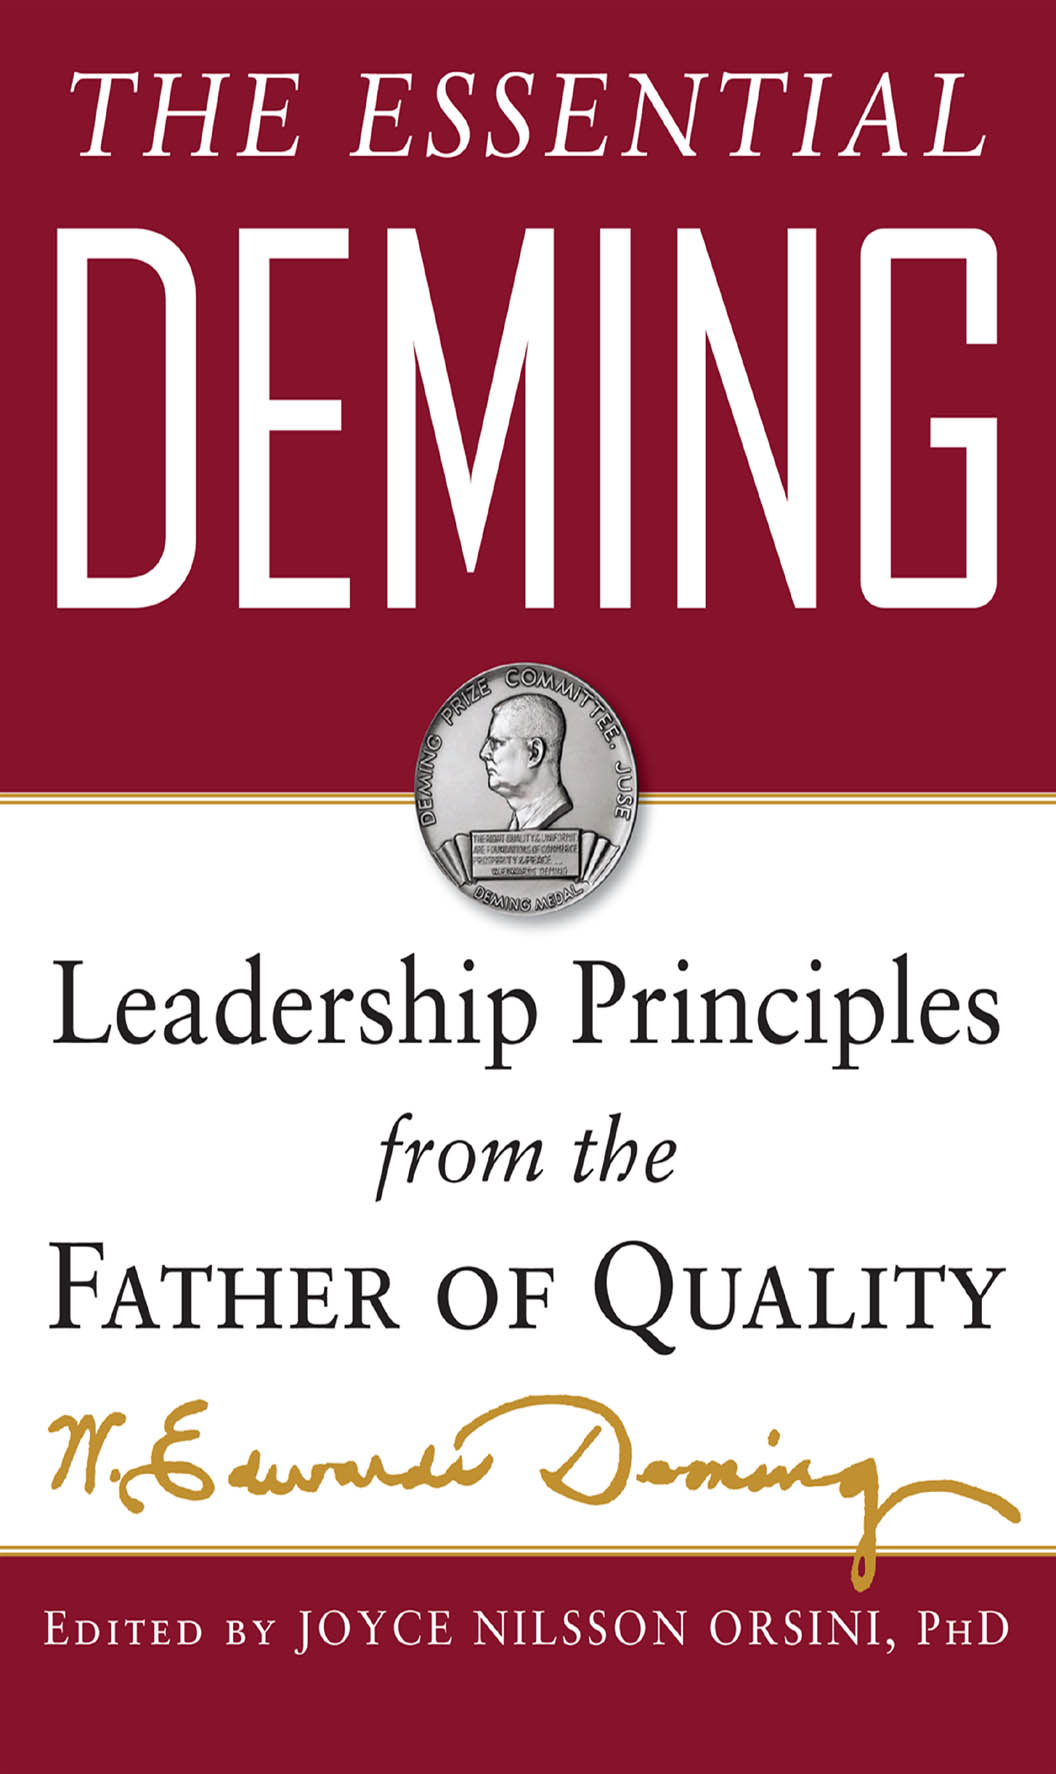 Download Ebook The Essential Deming: Leadership Principles from the Father of Quality by W. Edwards Deming Pdf